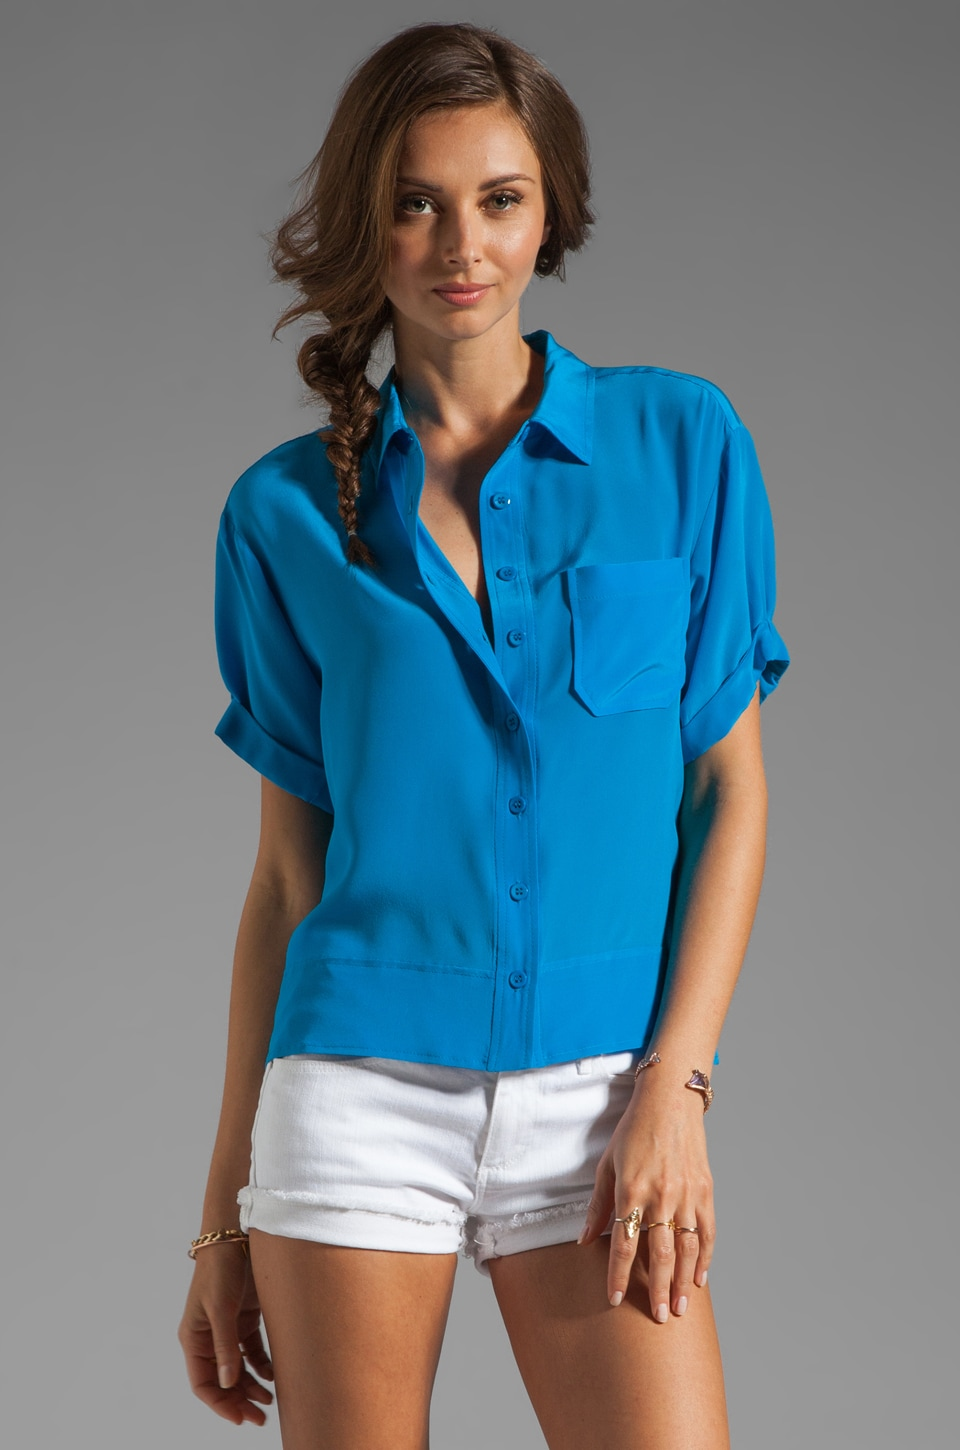 Nanette Lepore Twister Top in Blue Sky